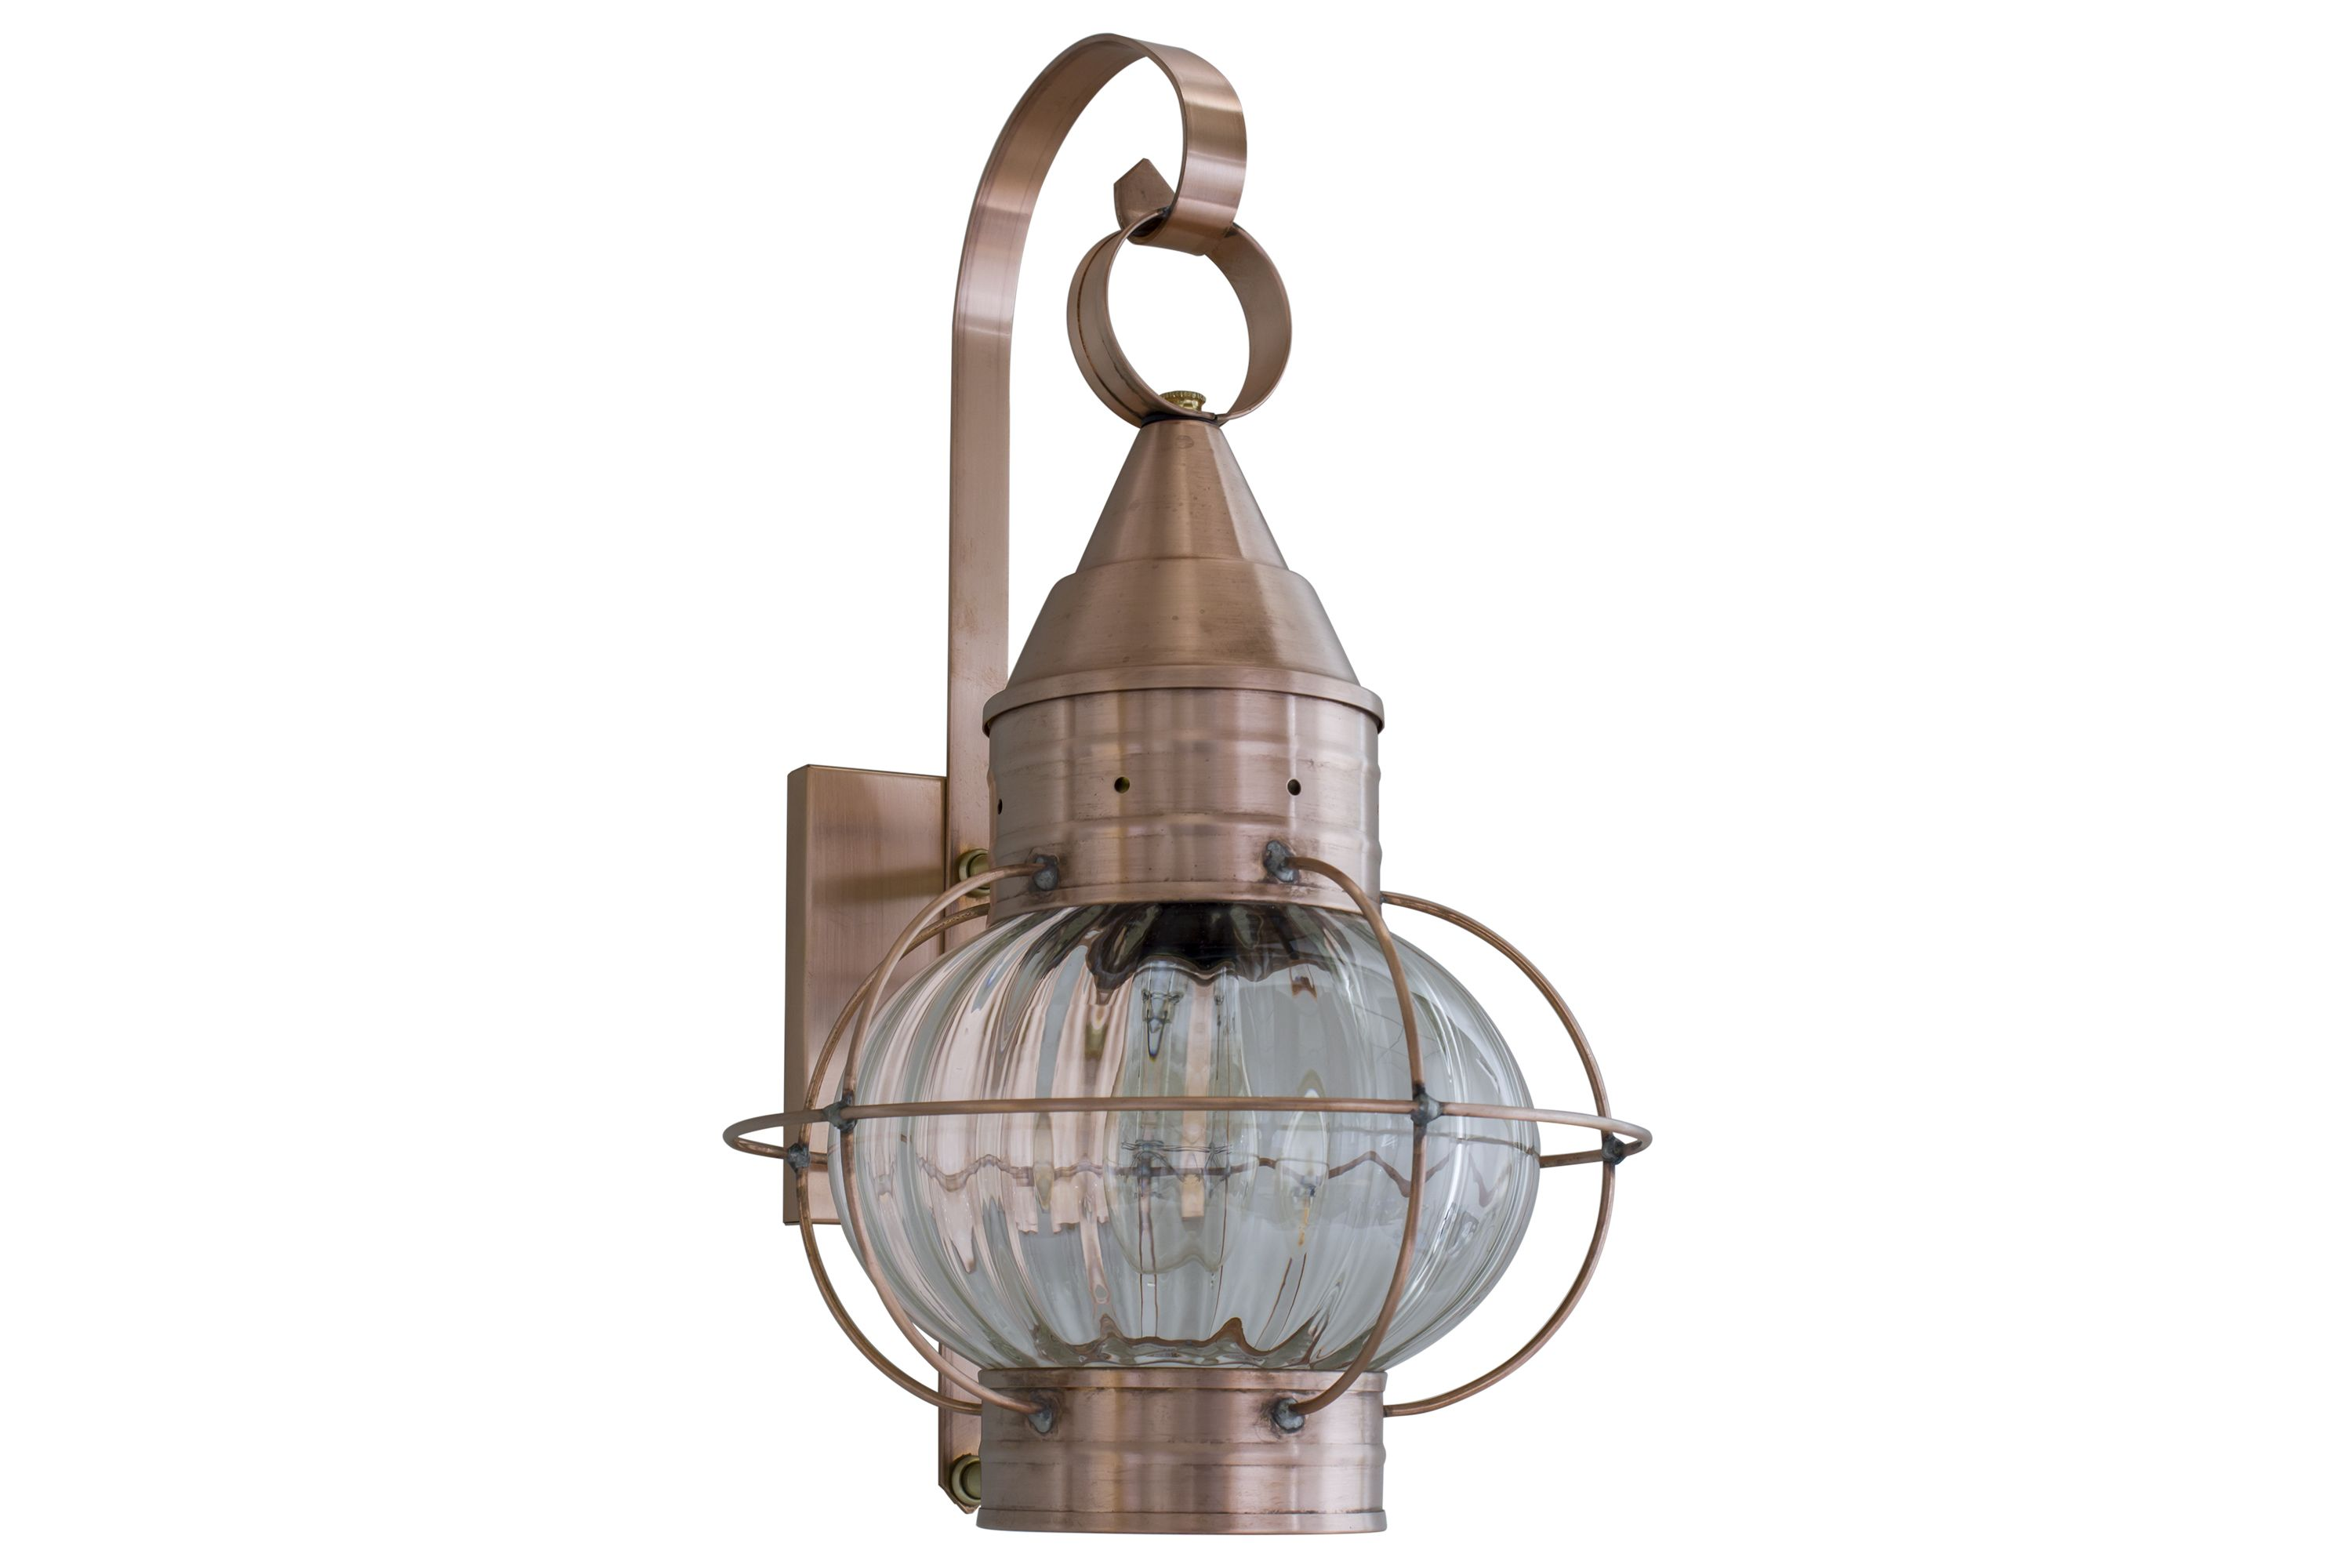 Brass Traditions 621 Onion Style Wall Lantern With Optic Globe Outdoor  Light Fixtures, Outdoor Lighting